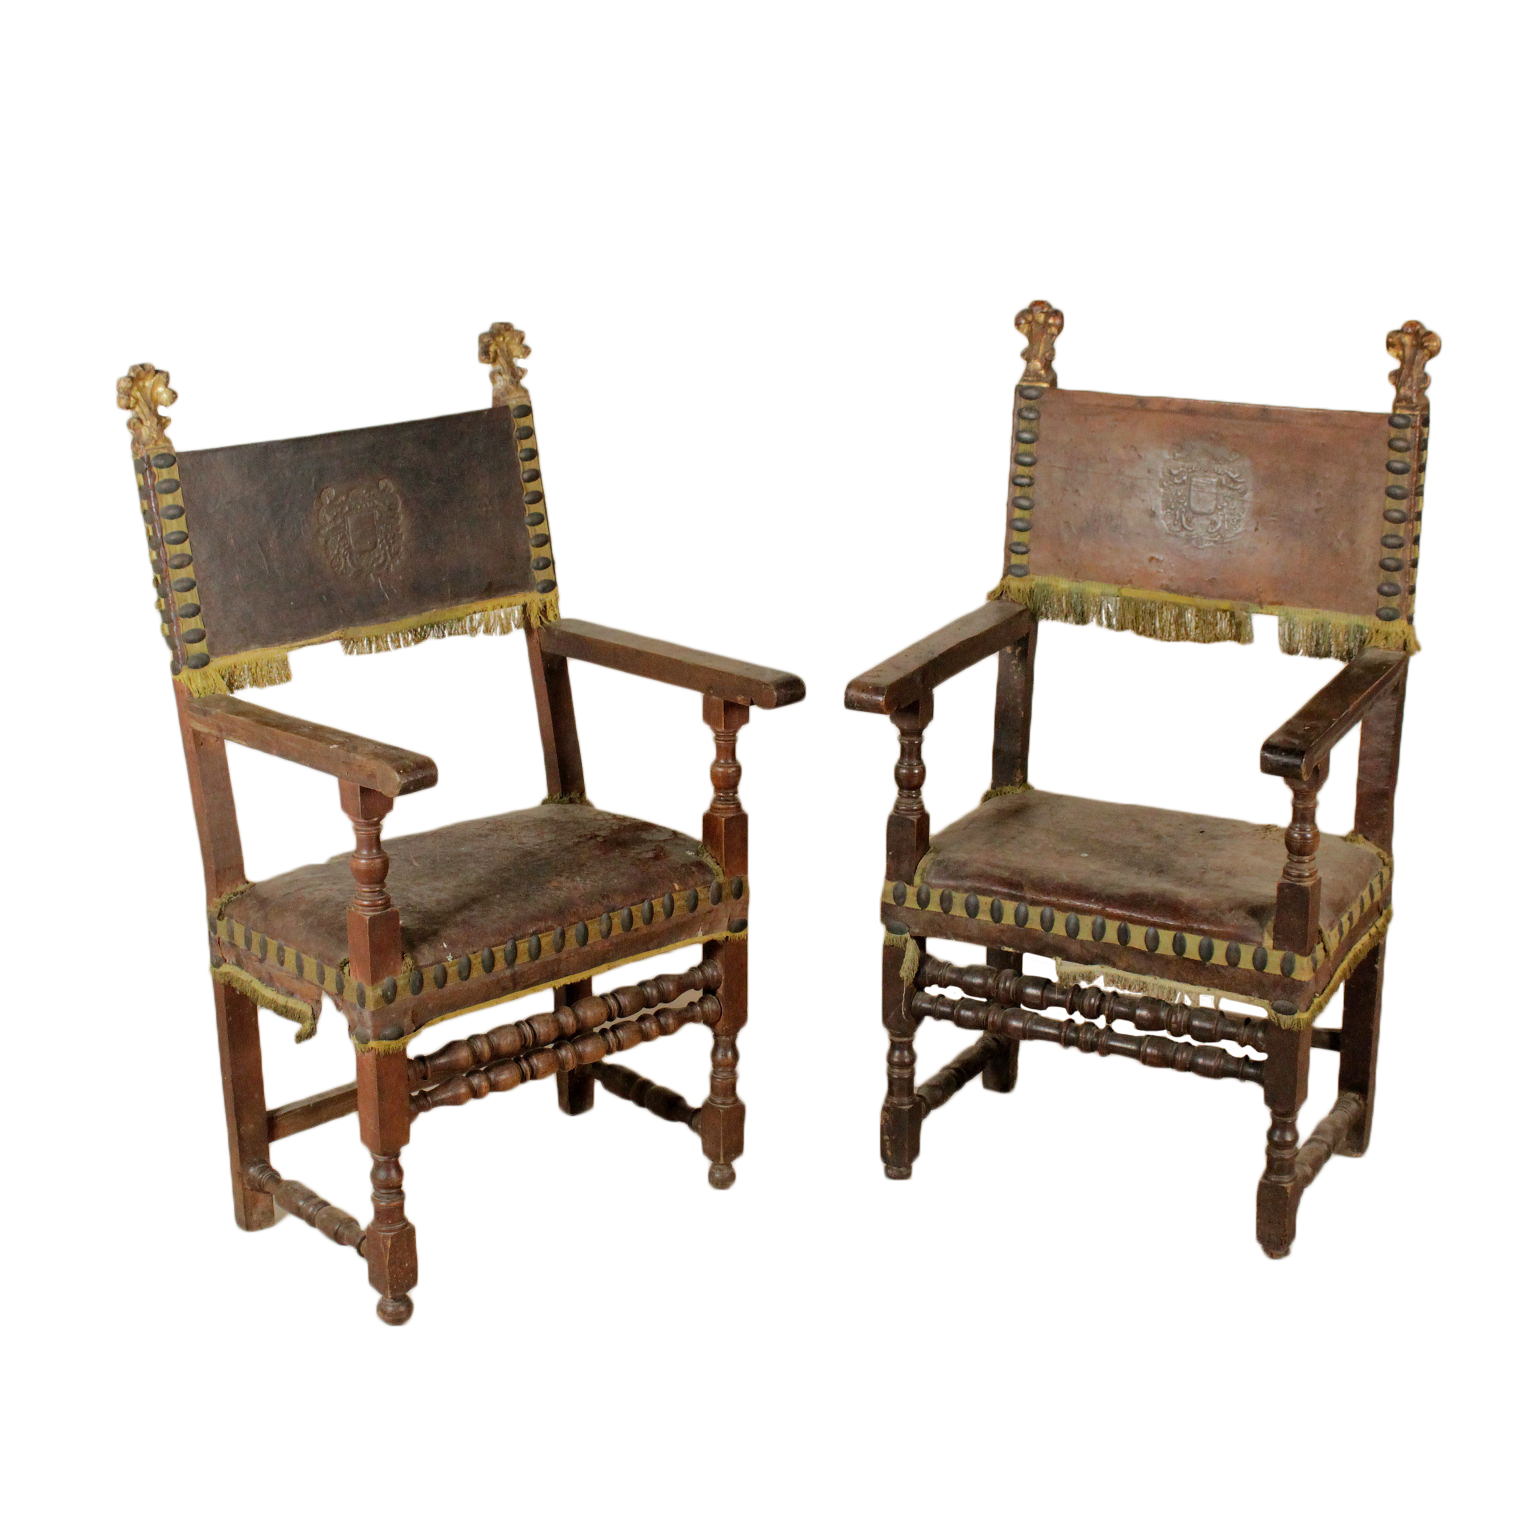 Stylish Furniture Pair Of Highchairs Walnut Leather Studs Italy 17th Century